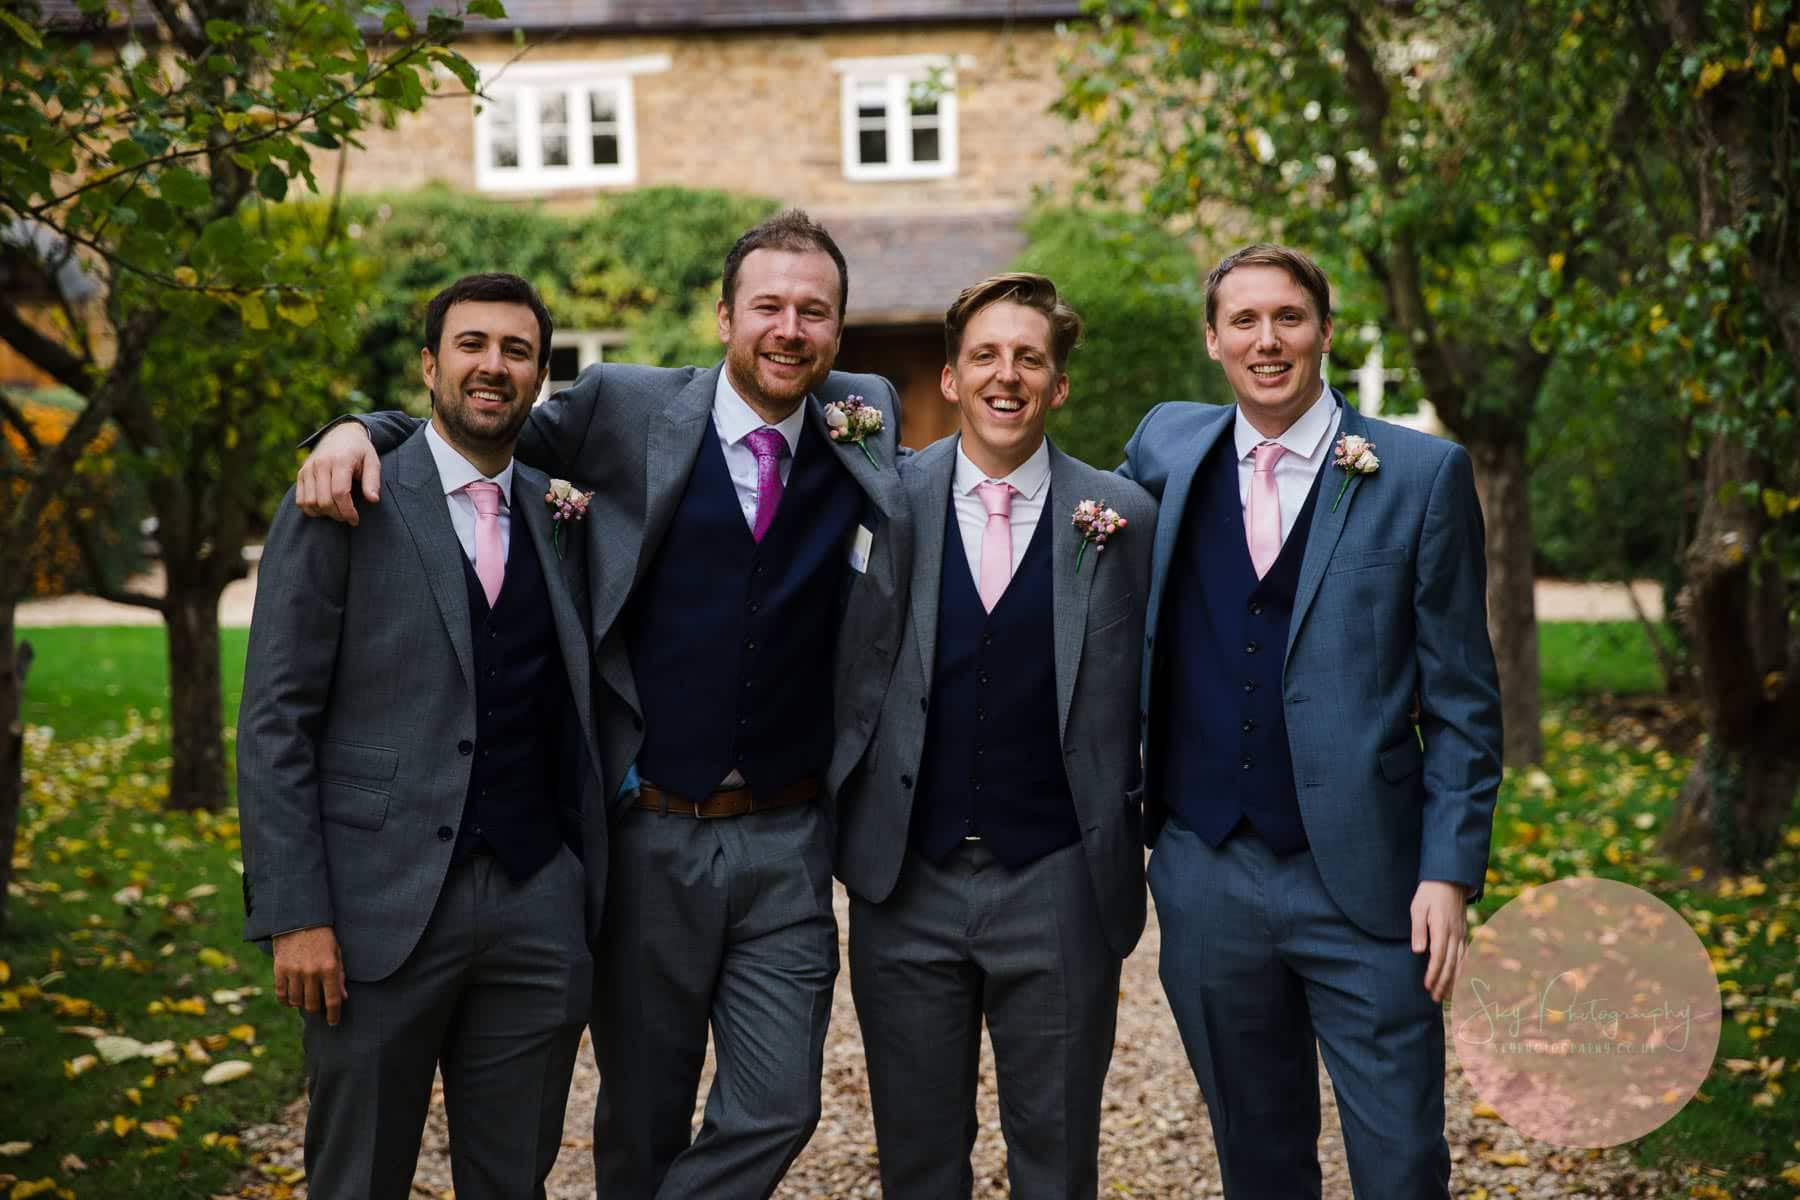 grooms men smiling posing for formal photos